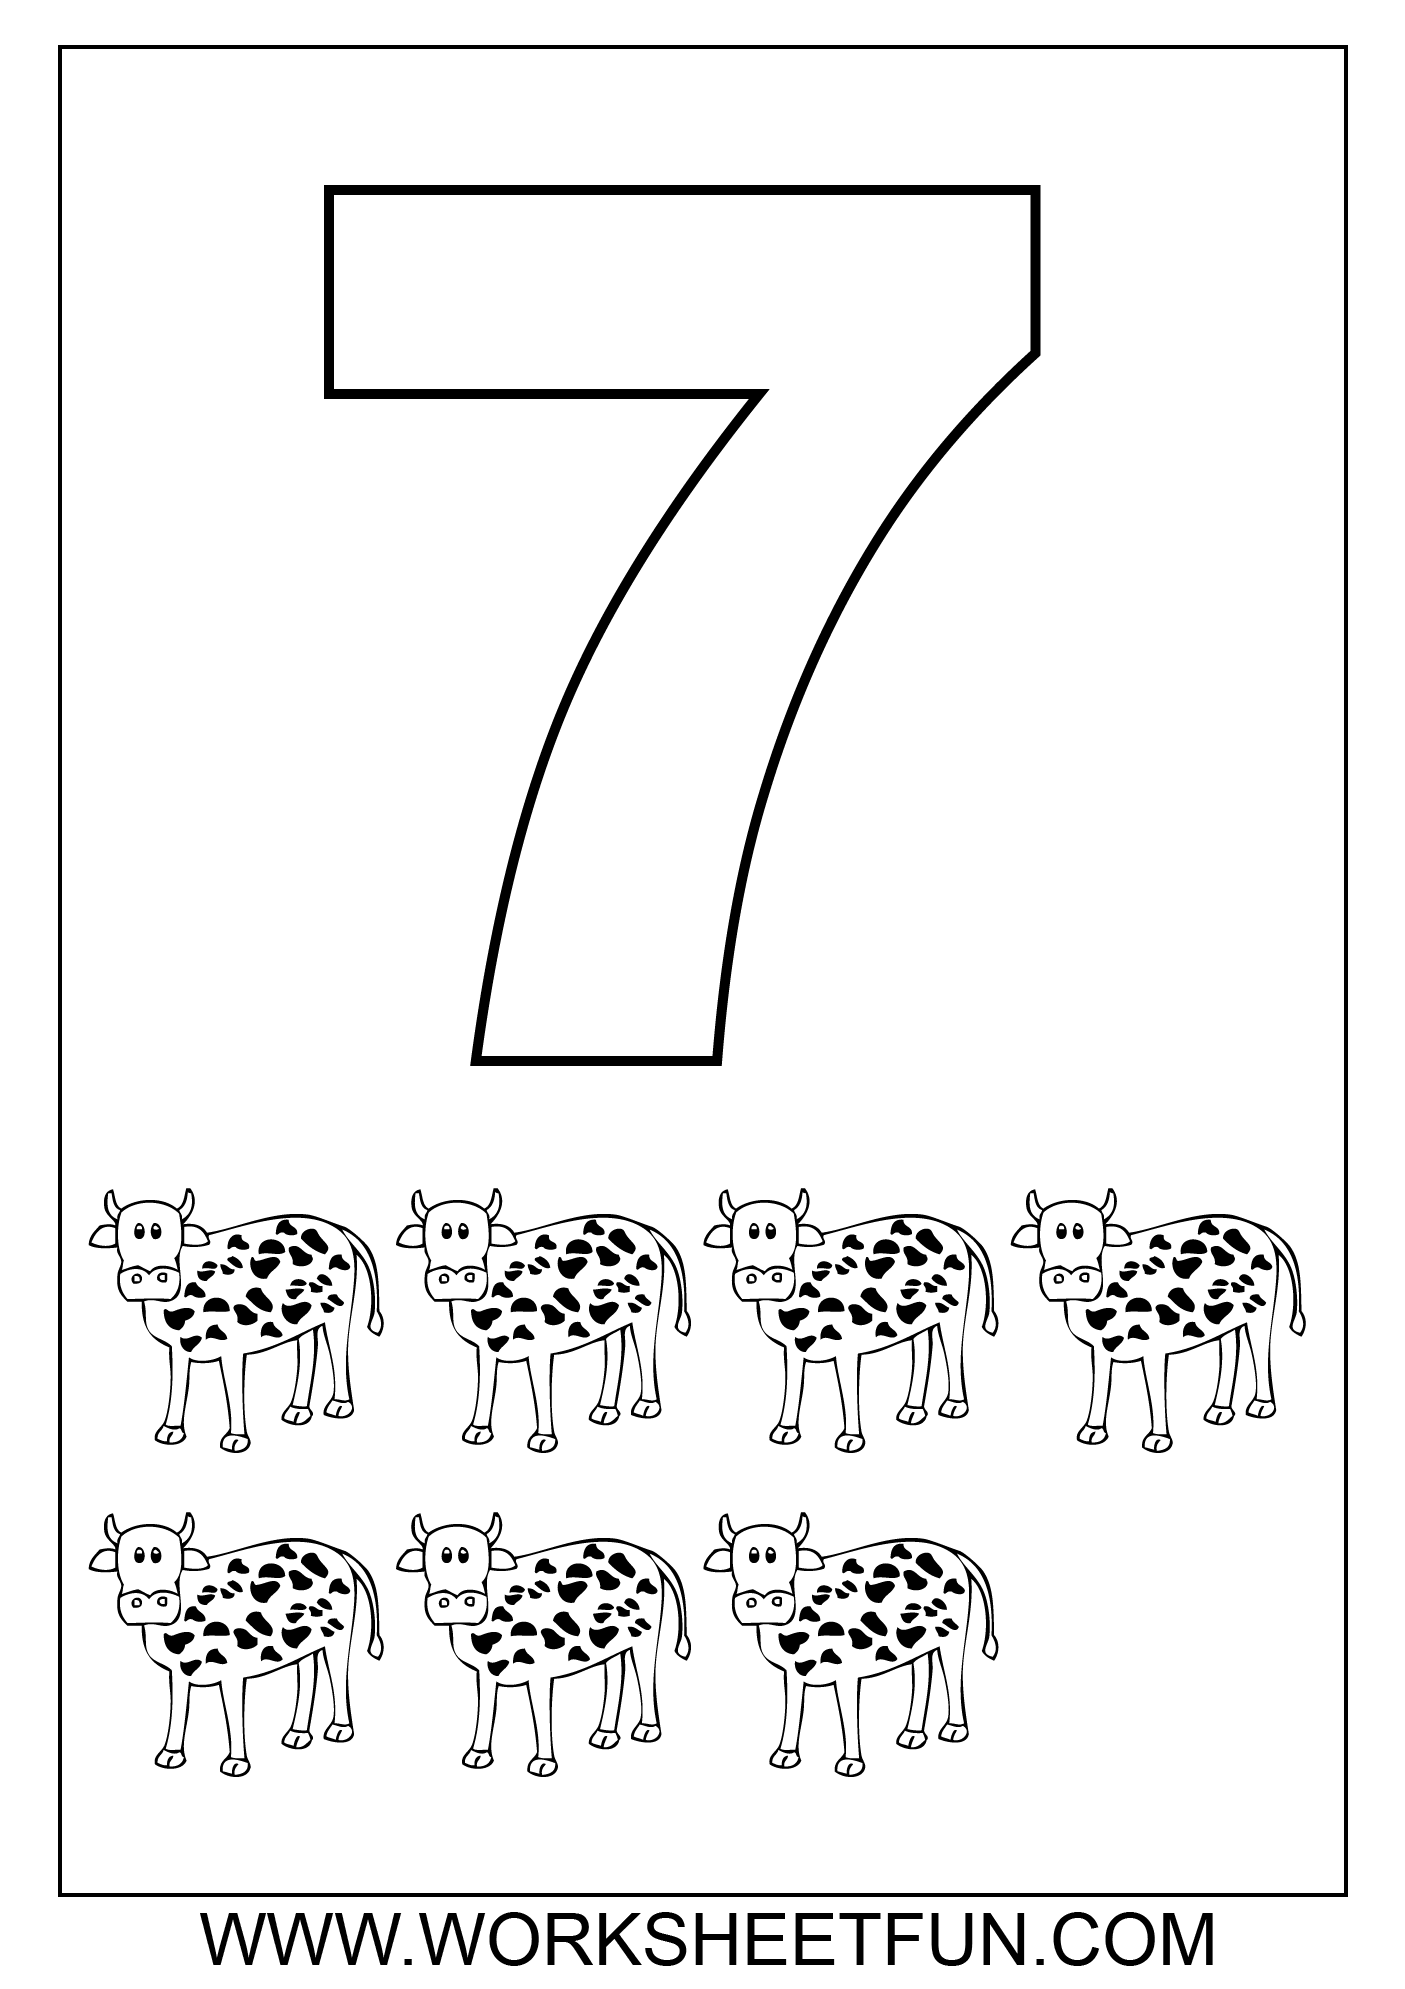 coloring number 7 worksheets craftsactvities and worksheets for preschooltoddler and number 7 coloring worksheets